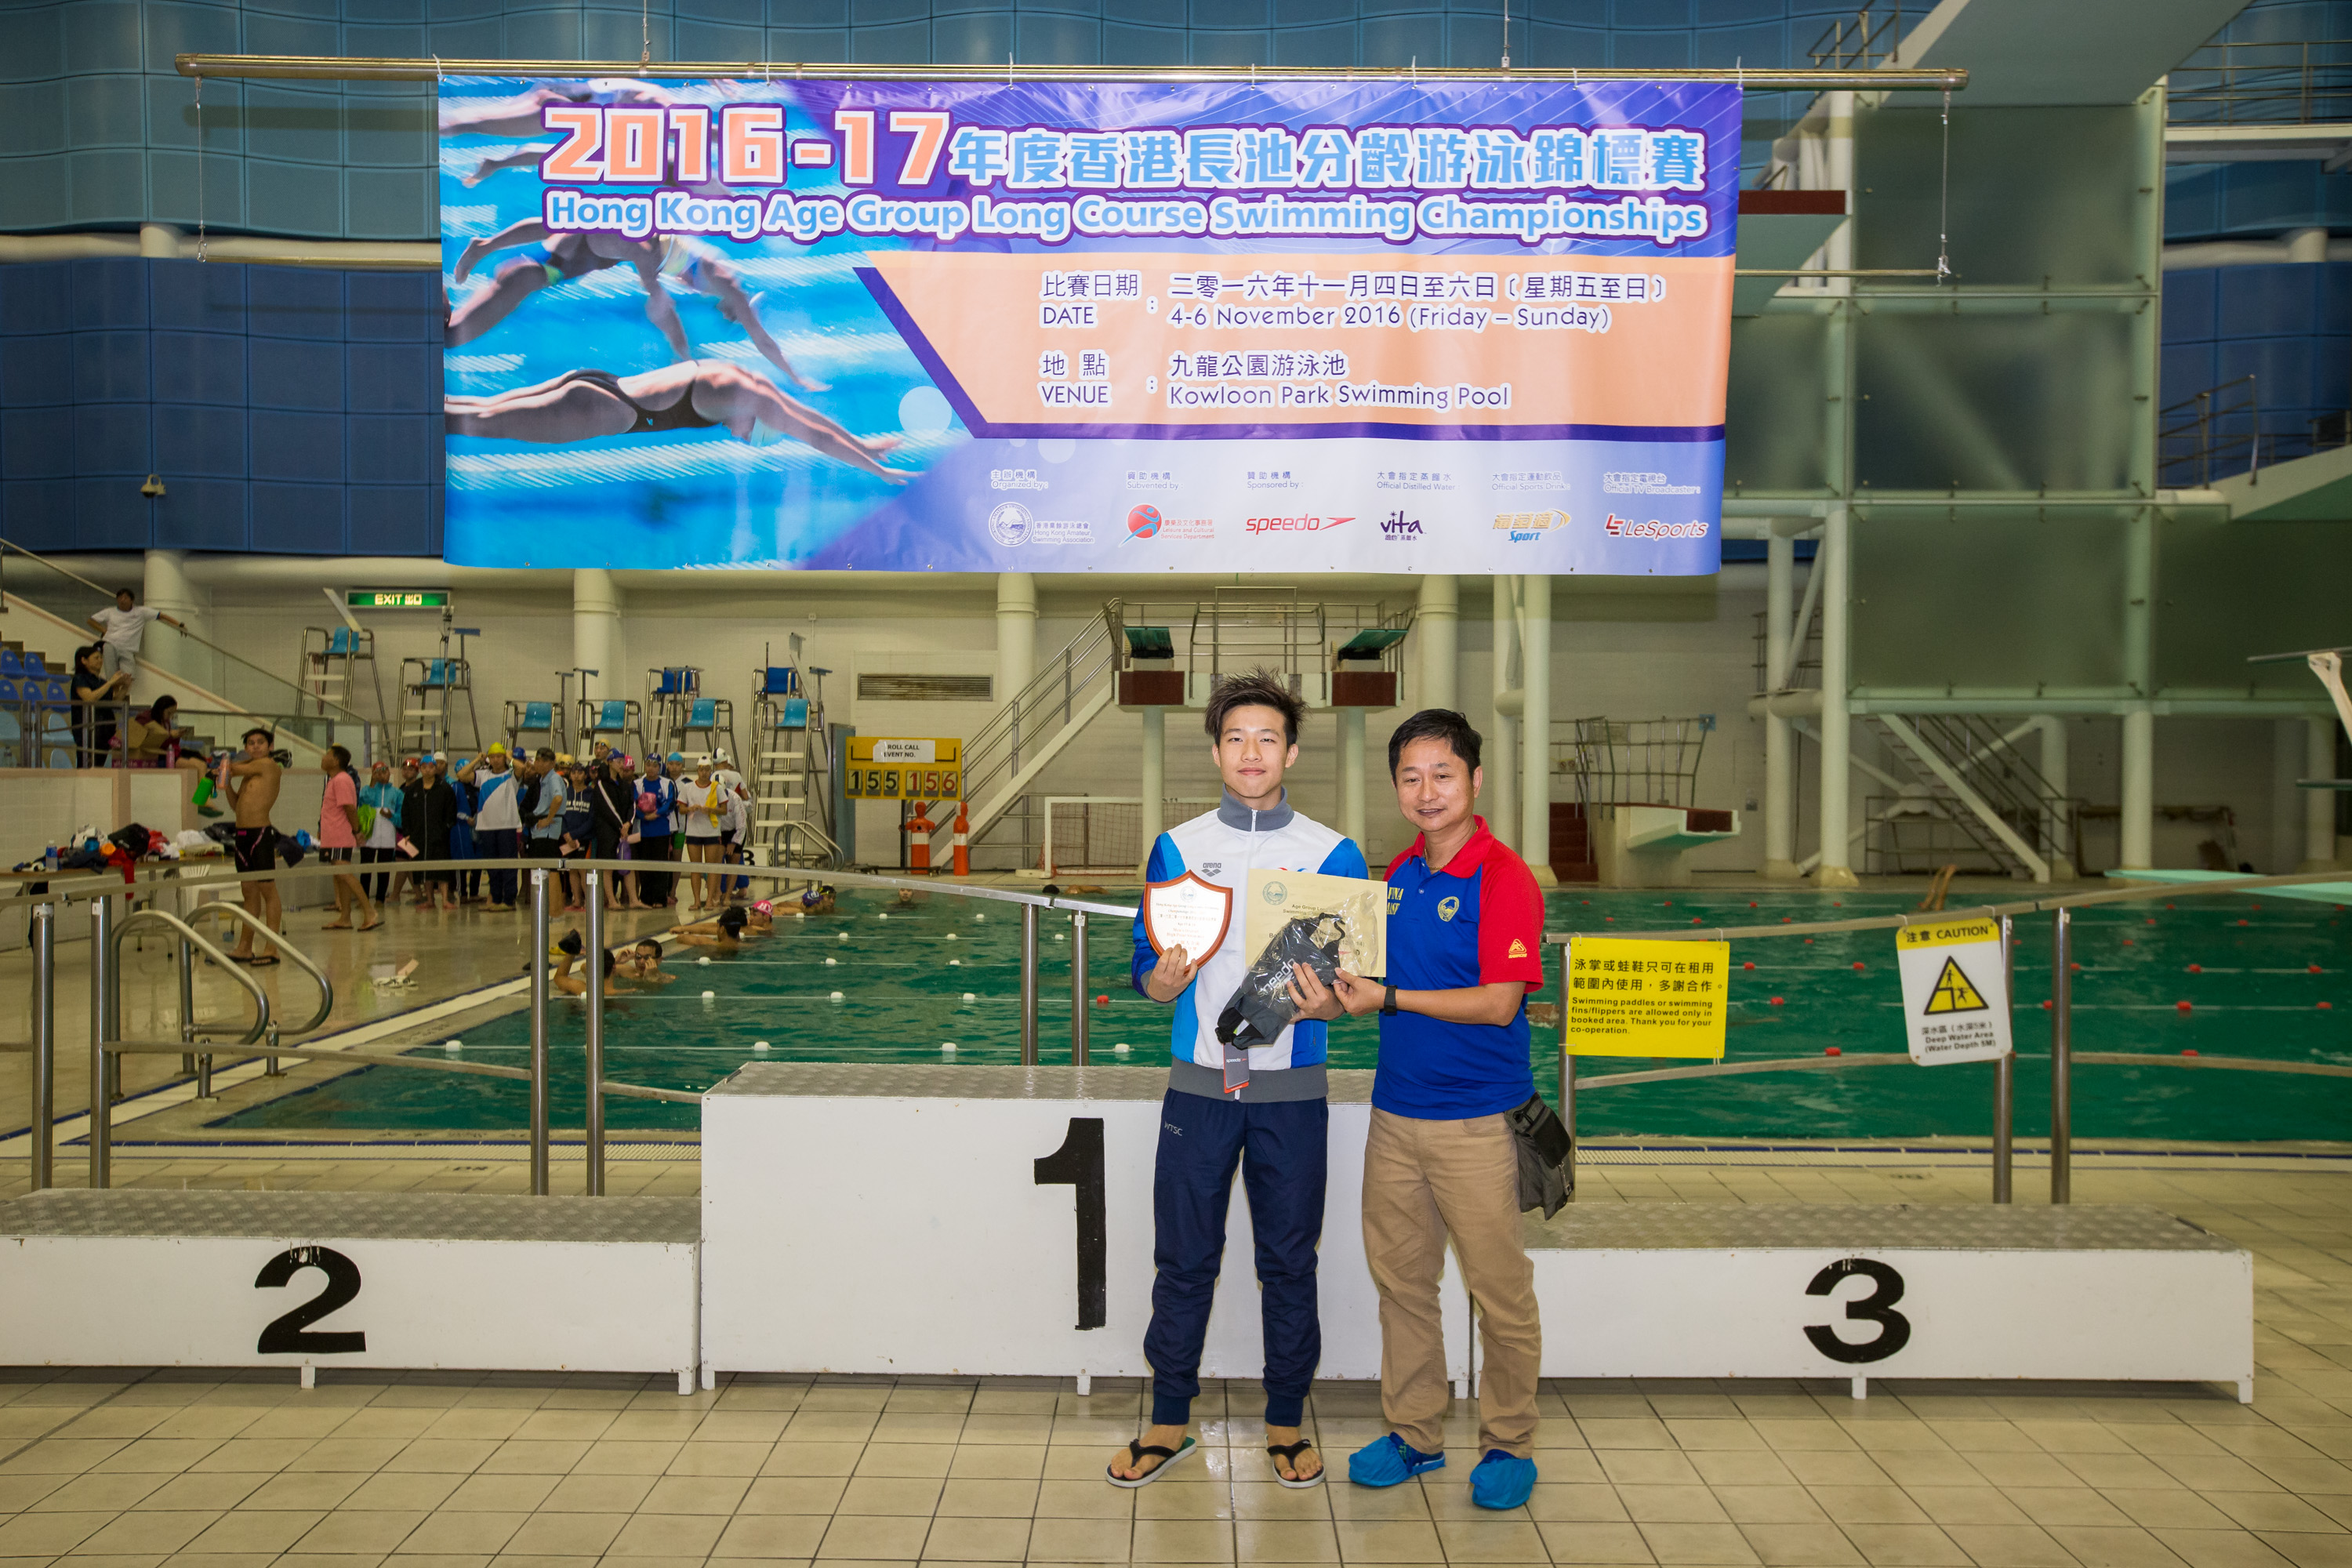 Win Tin Swimming Club - 2016 LCC Tam Sze Shing